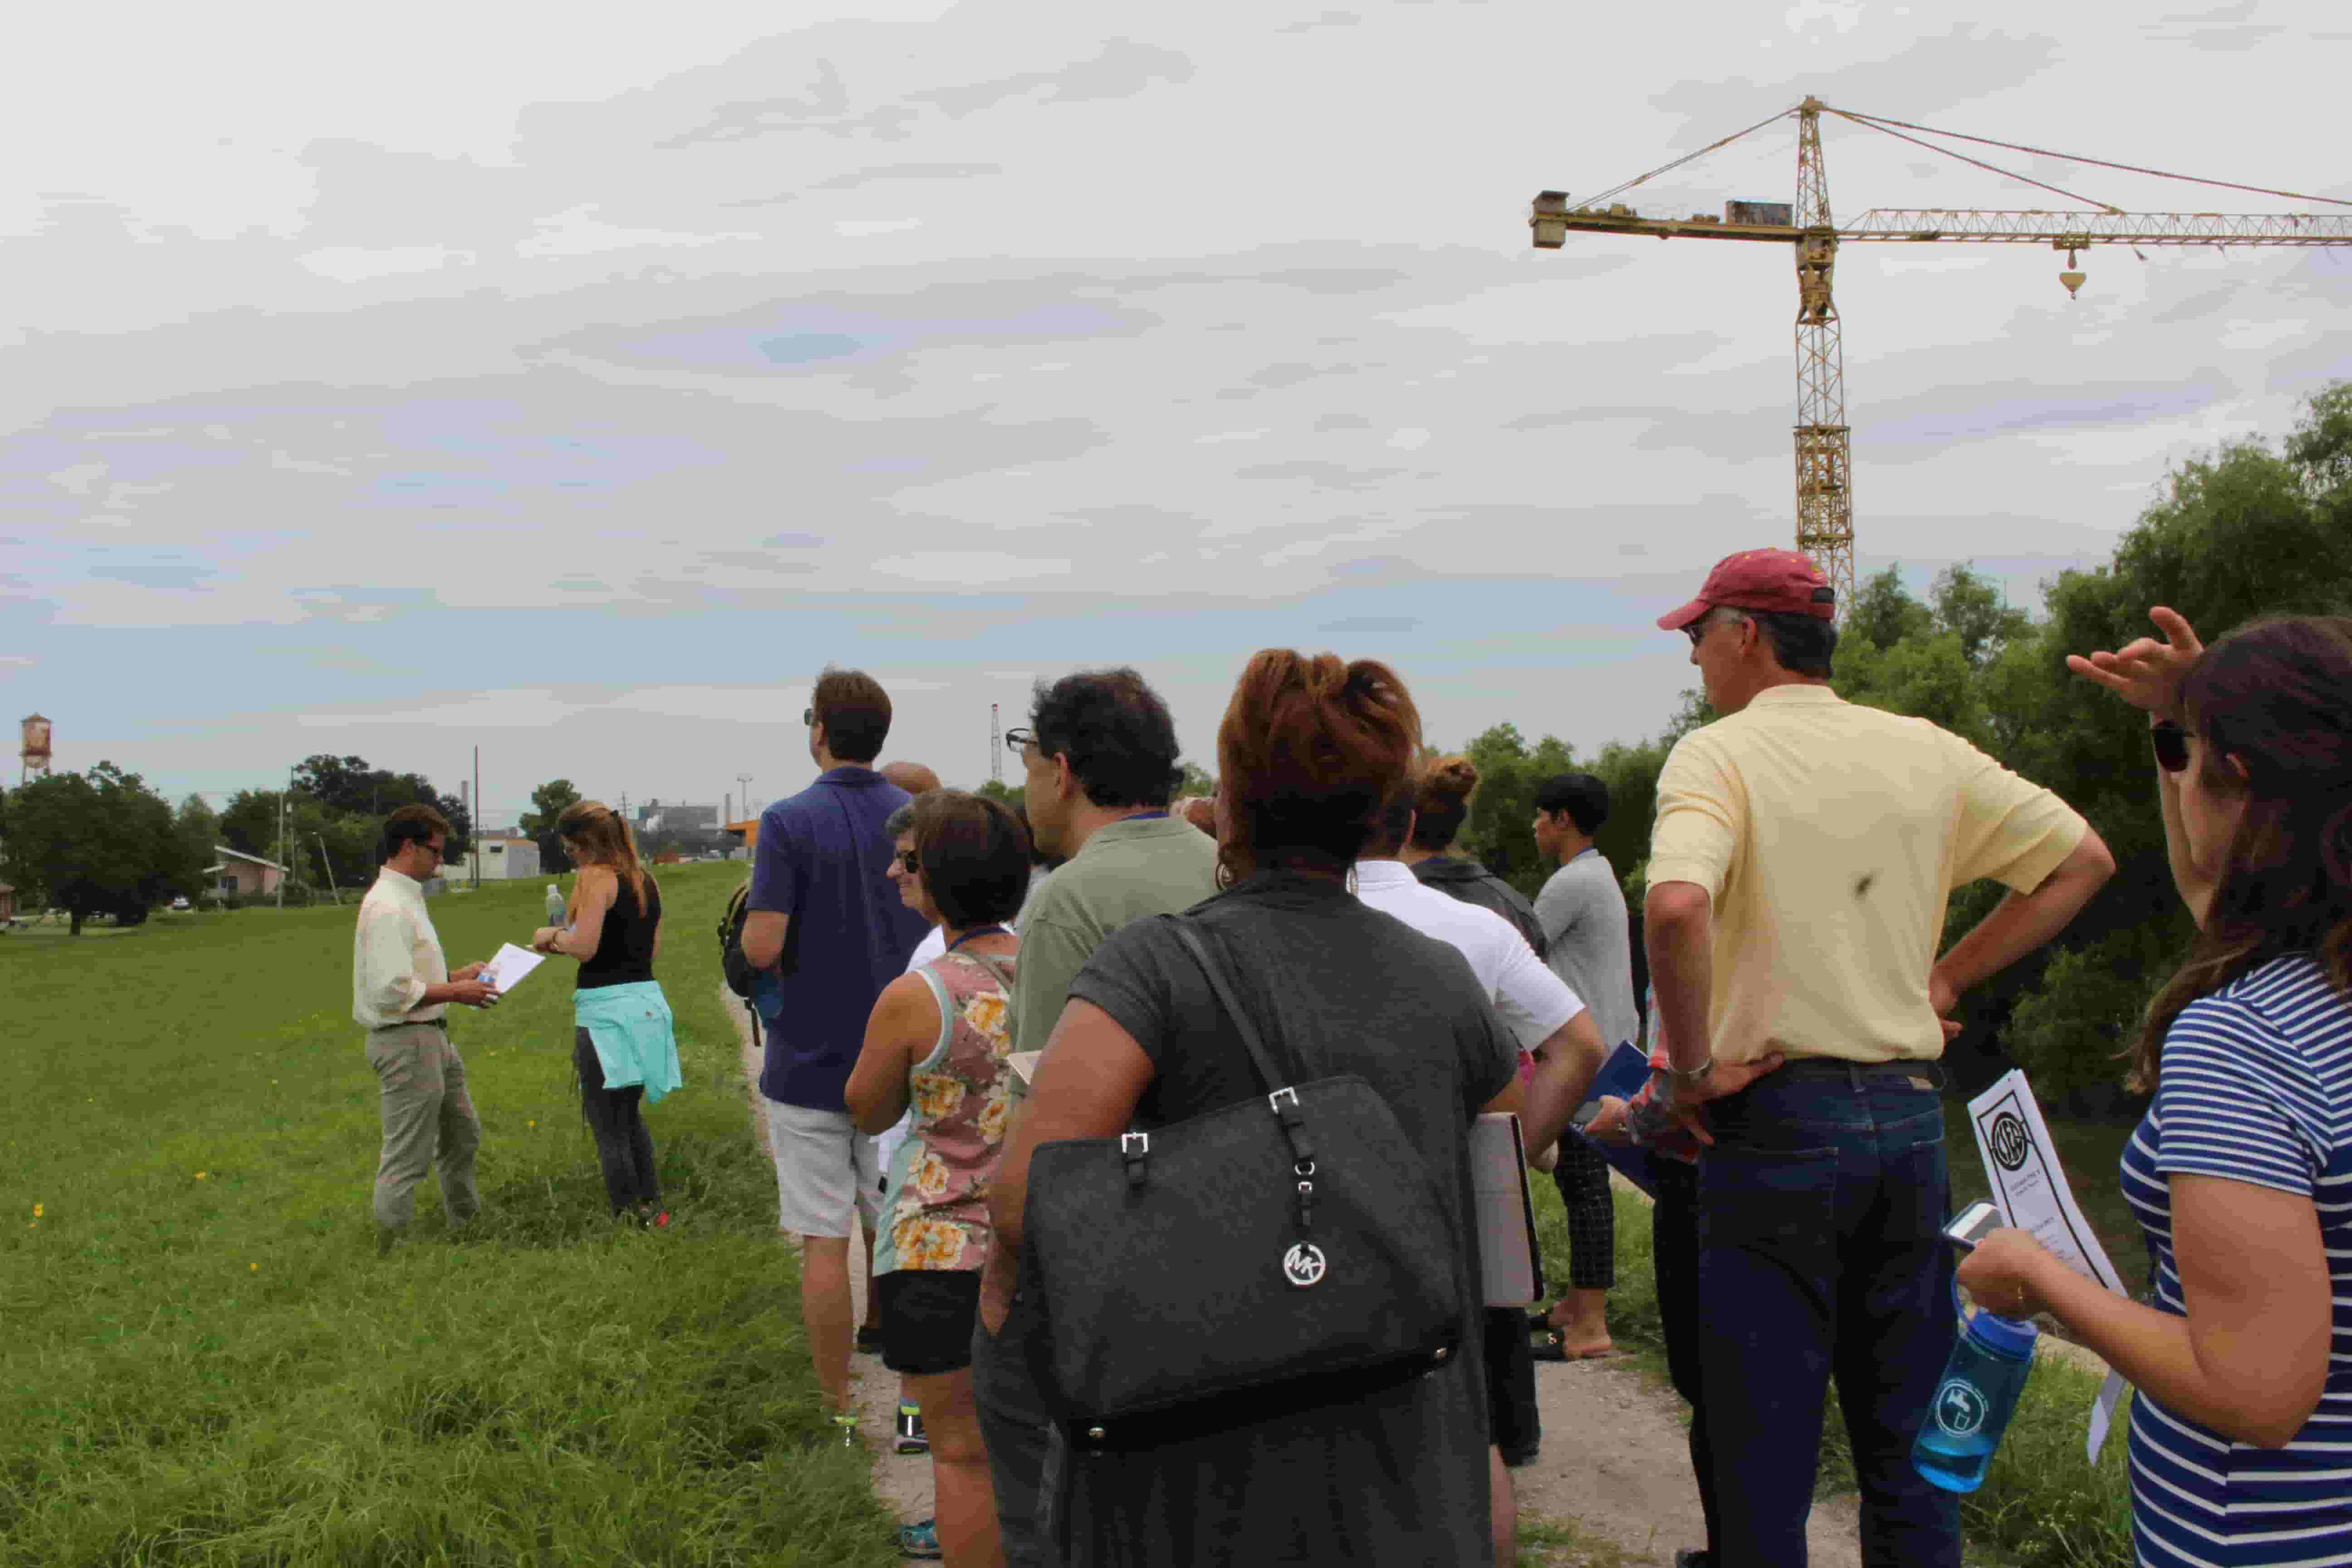 Delegates listen to speaker at excursion site, part of the One Water Summit agenda